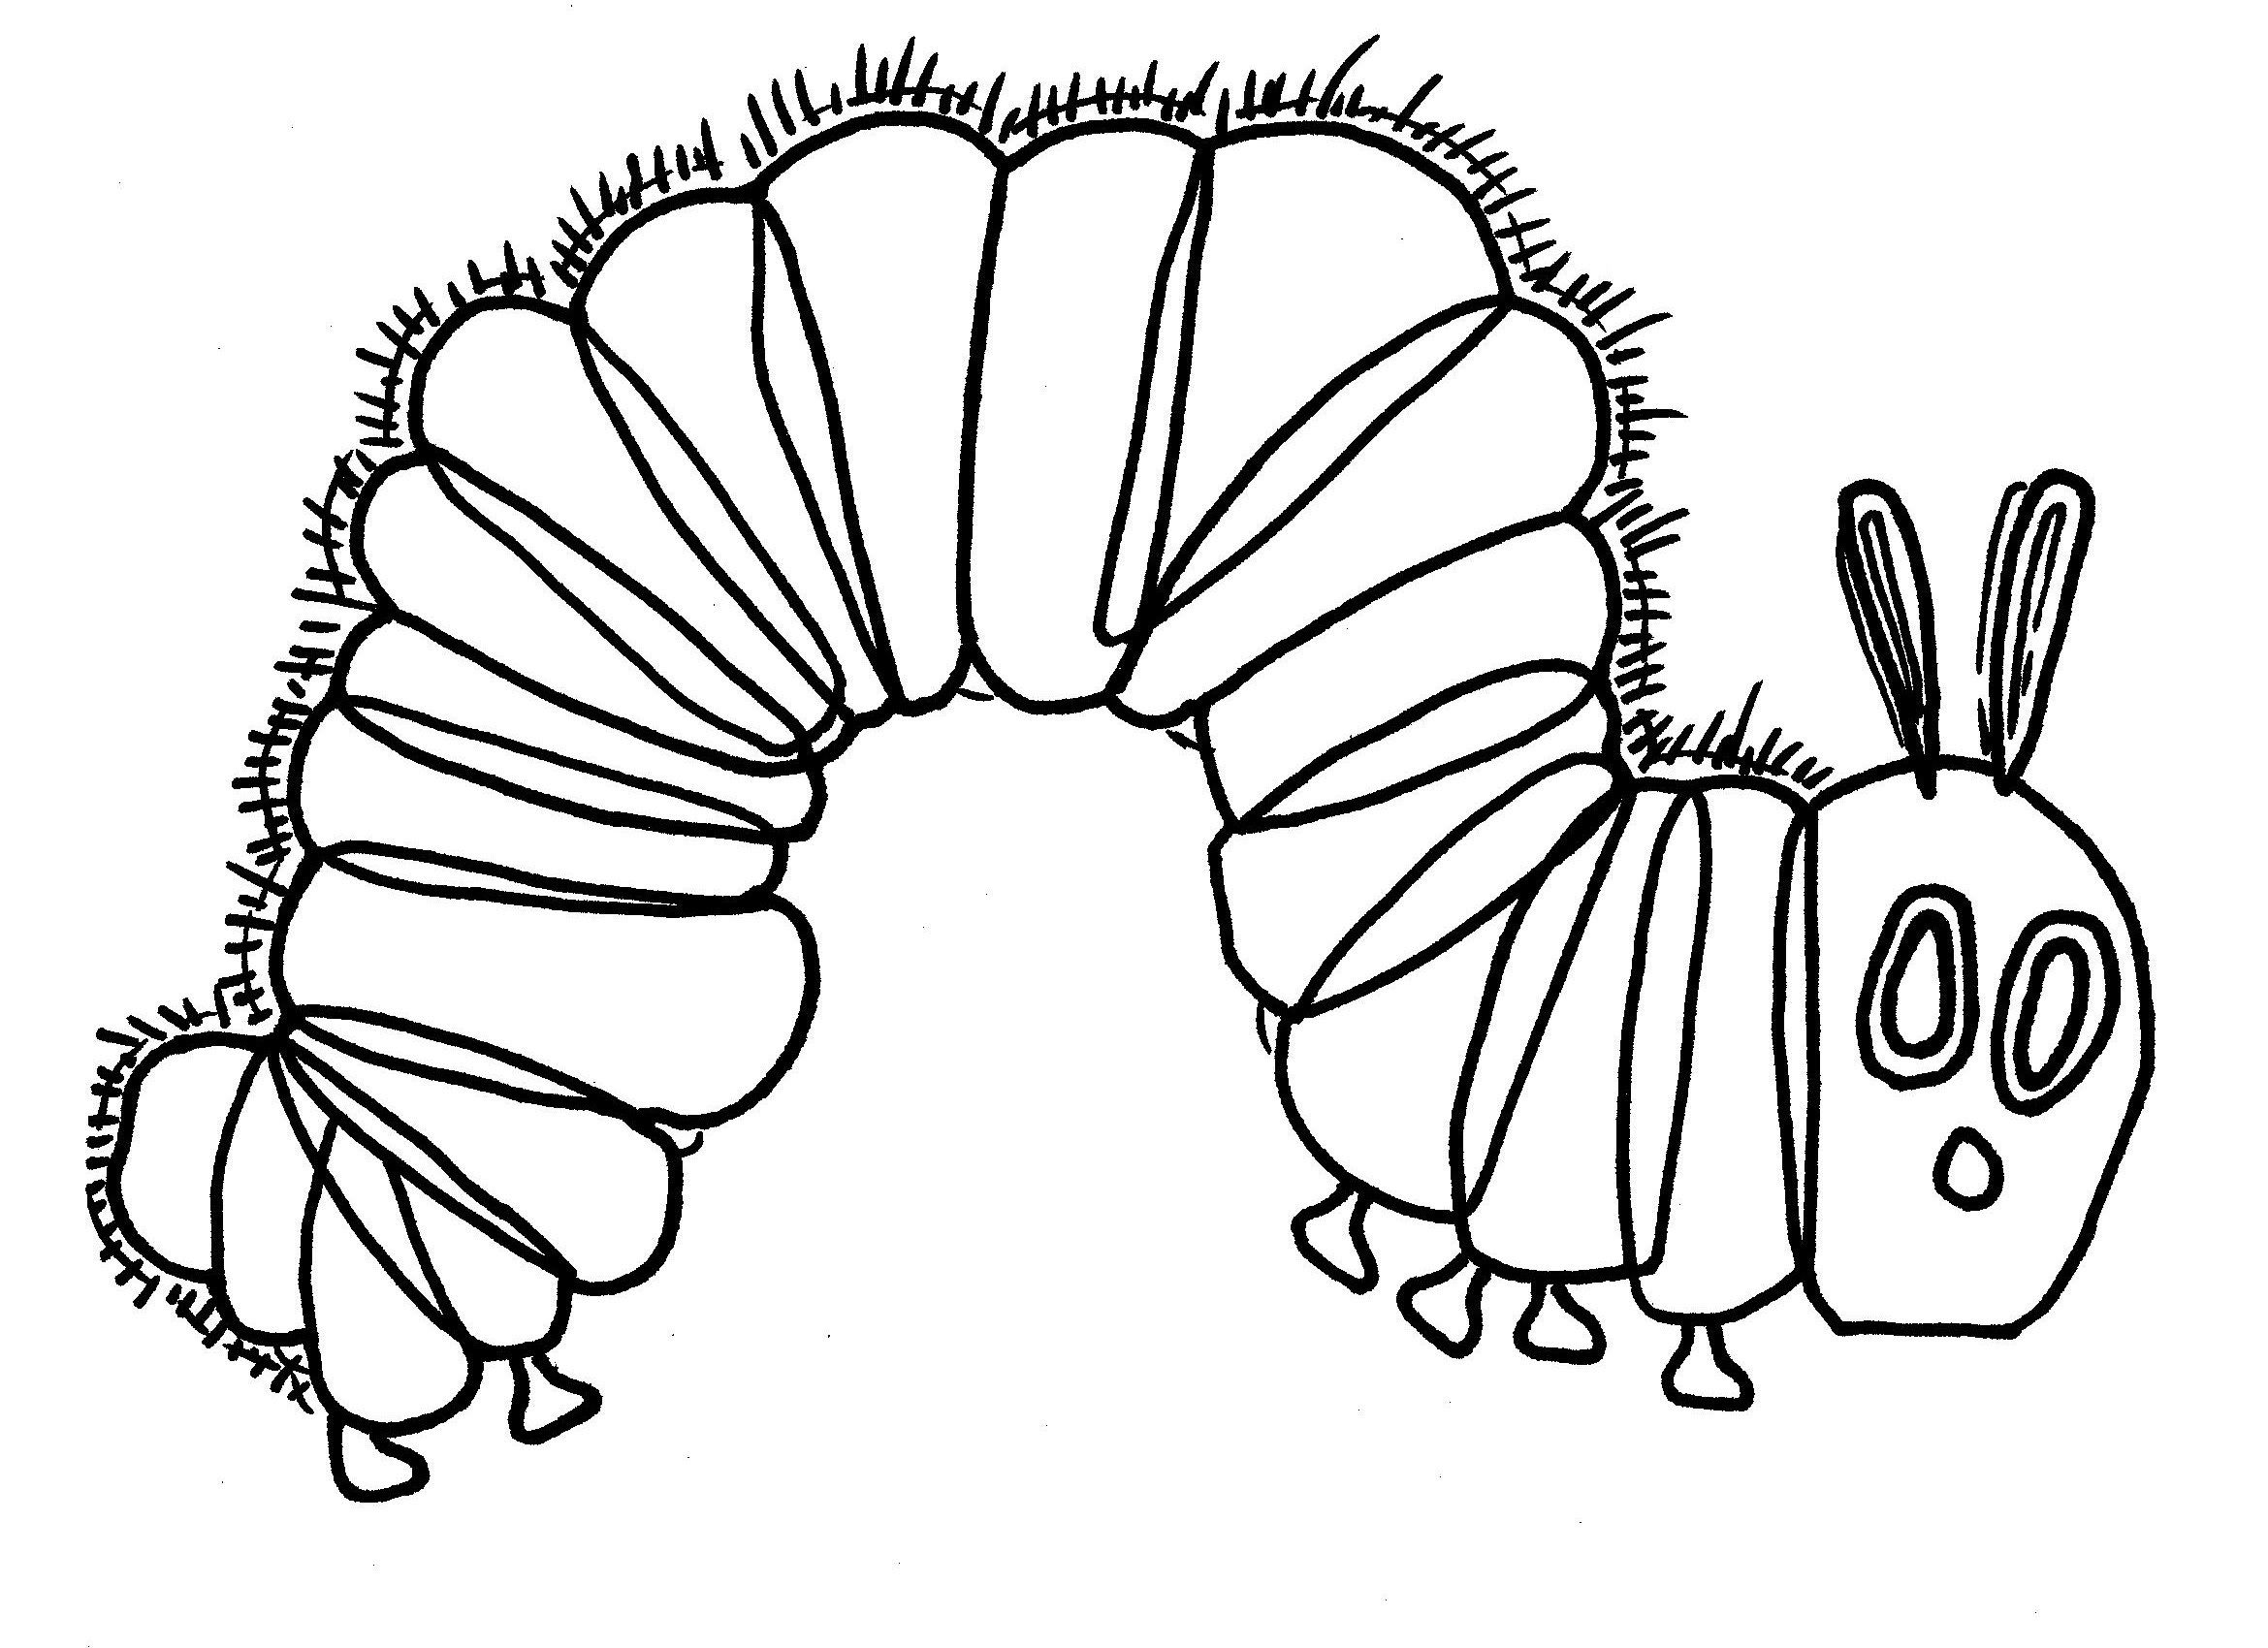 Hungry Caterpillar Coloring Page Butterfly Coloring Page Caterpillar Art Coloring Pages